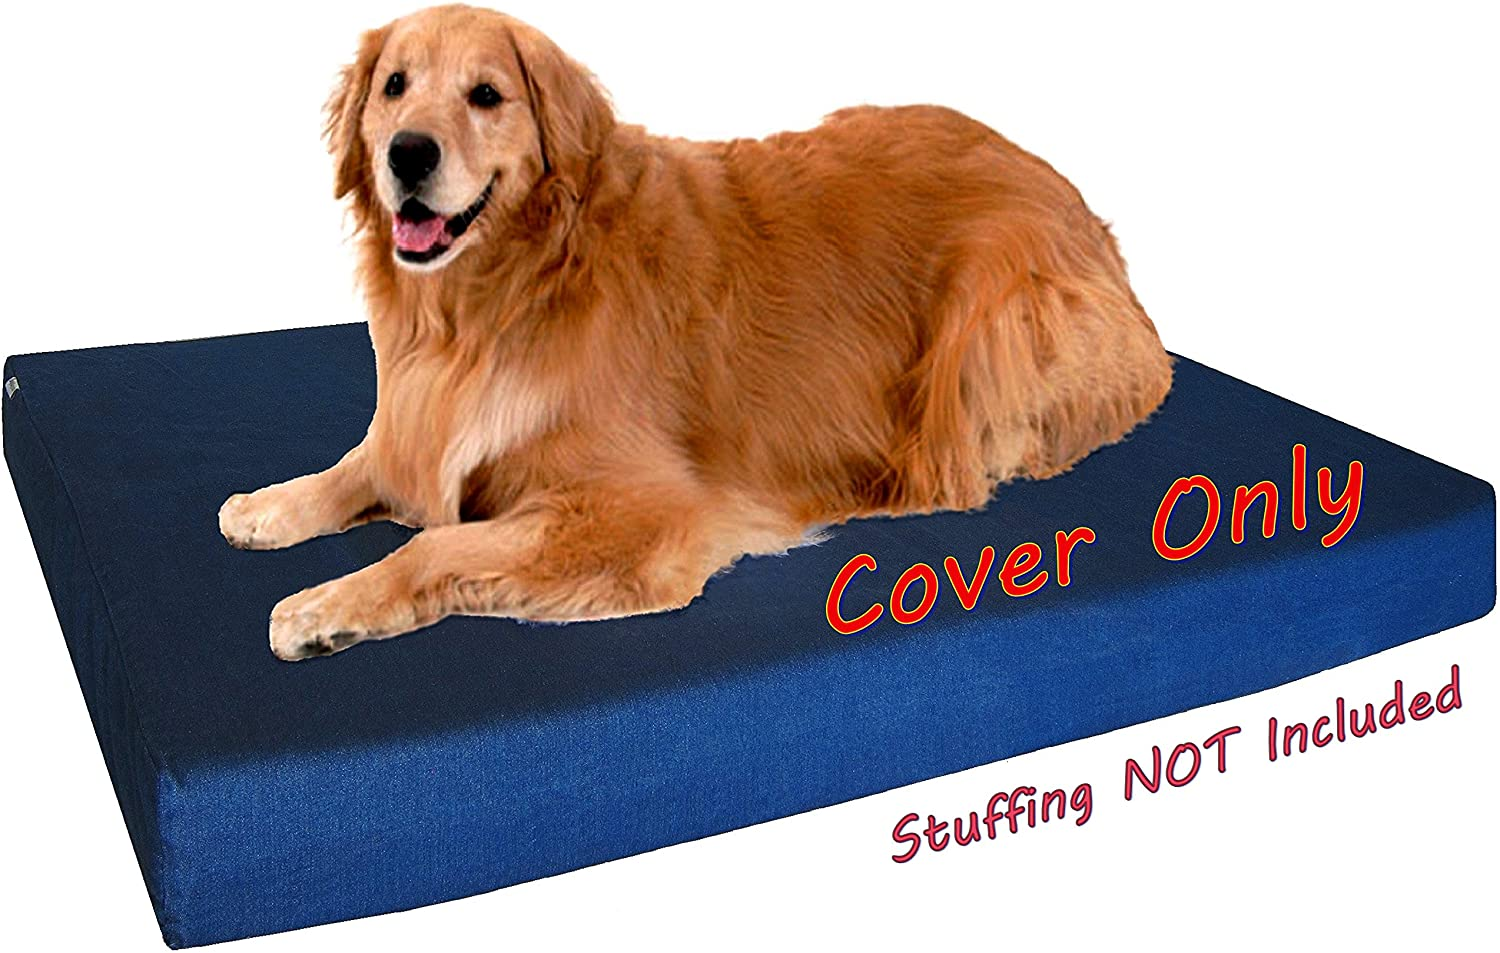 Dogbed4less 40X35X4 Inches Blue Color Durable Denim Jean Dog Pet Bed External Zipper Cover - Replacement Cover only : Pet Supplies